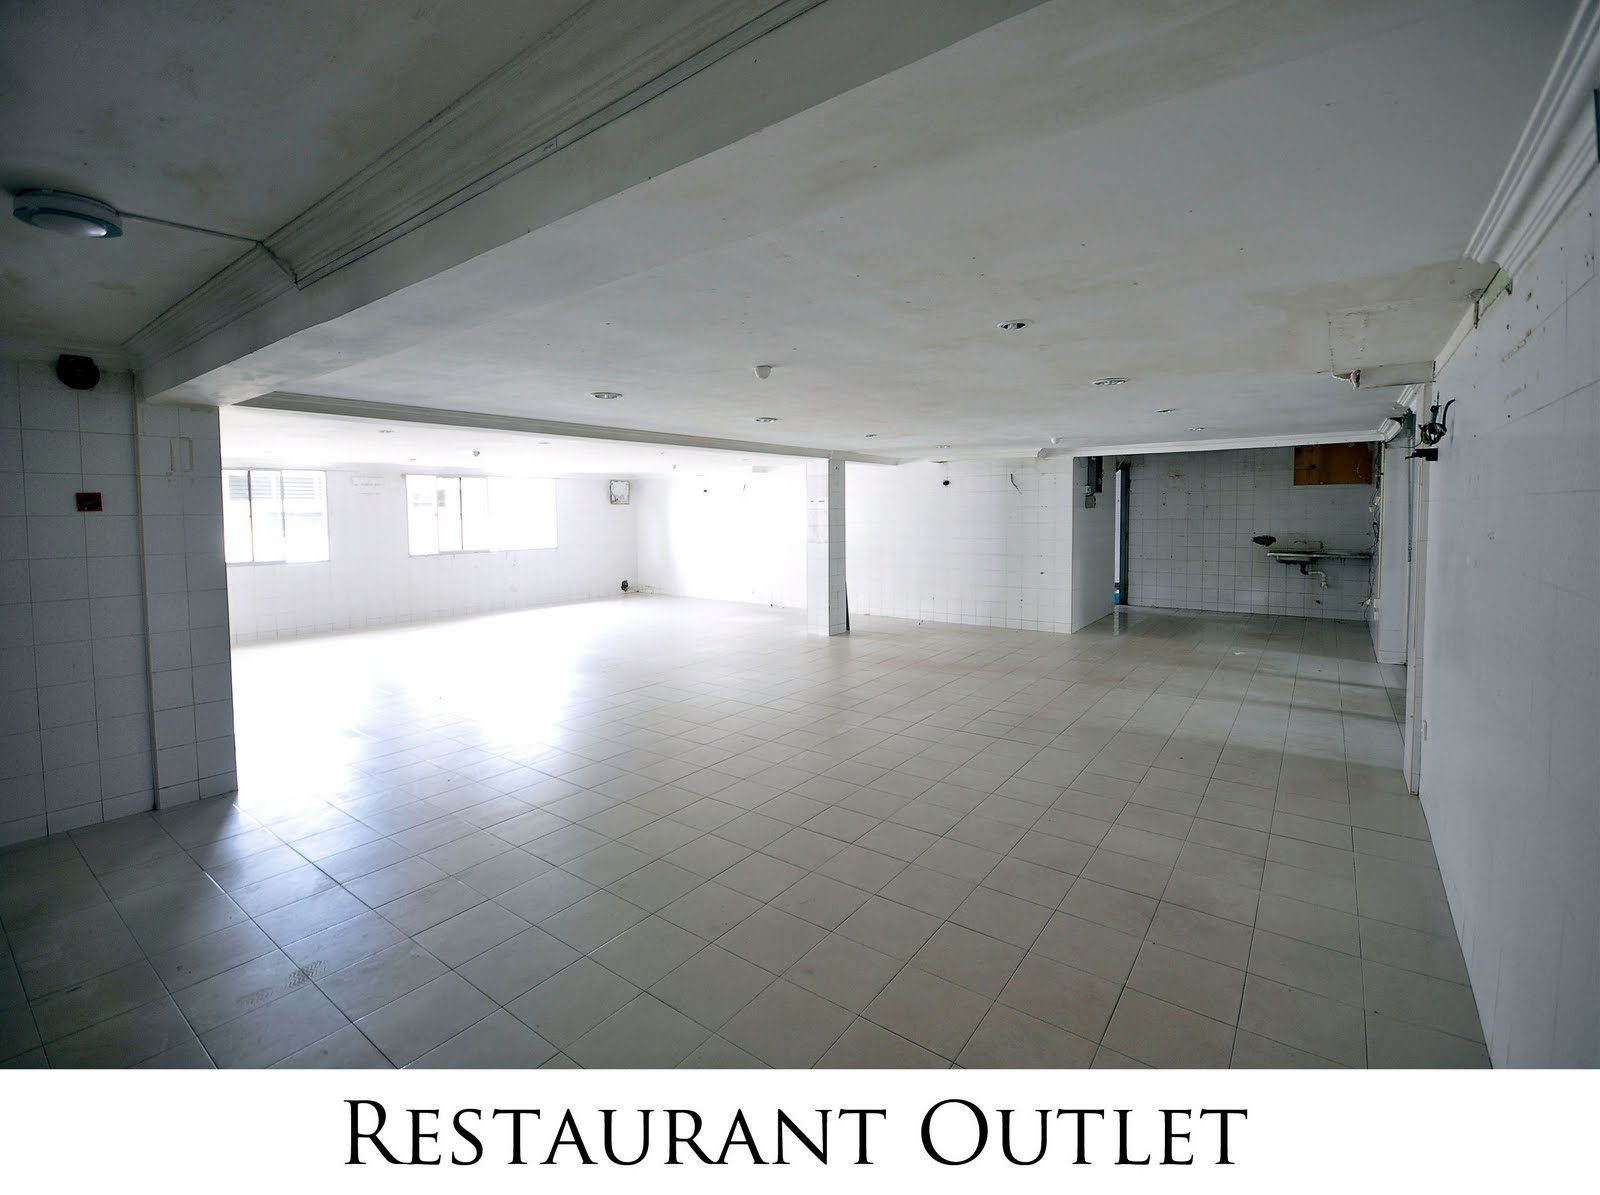 Y Penang Empty Restaurant Space To Rent